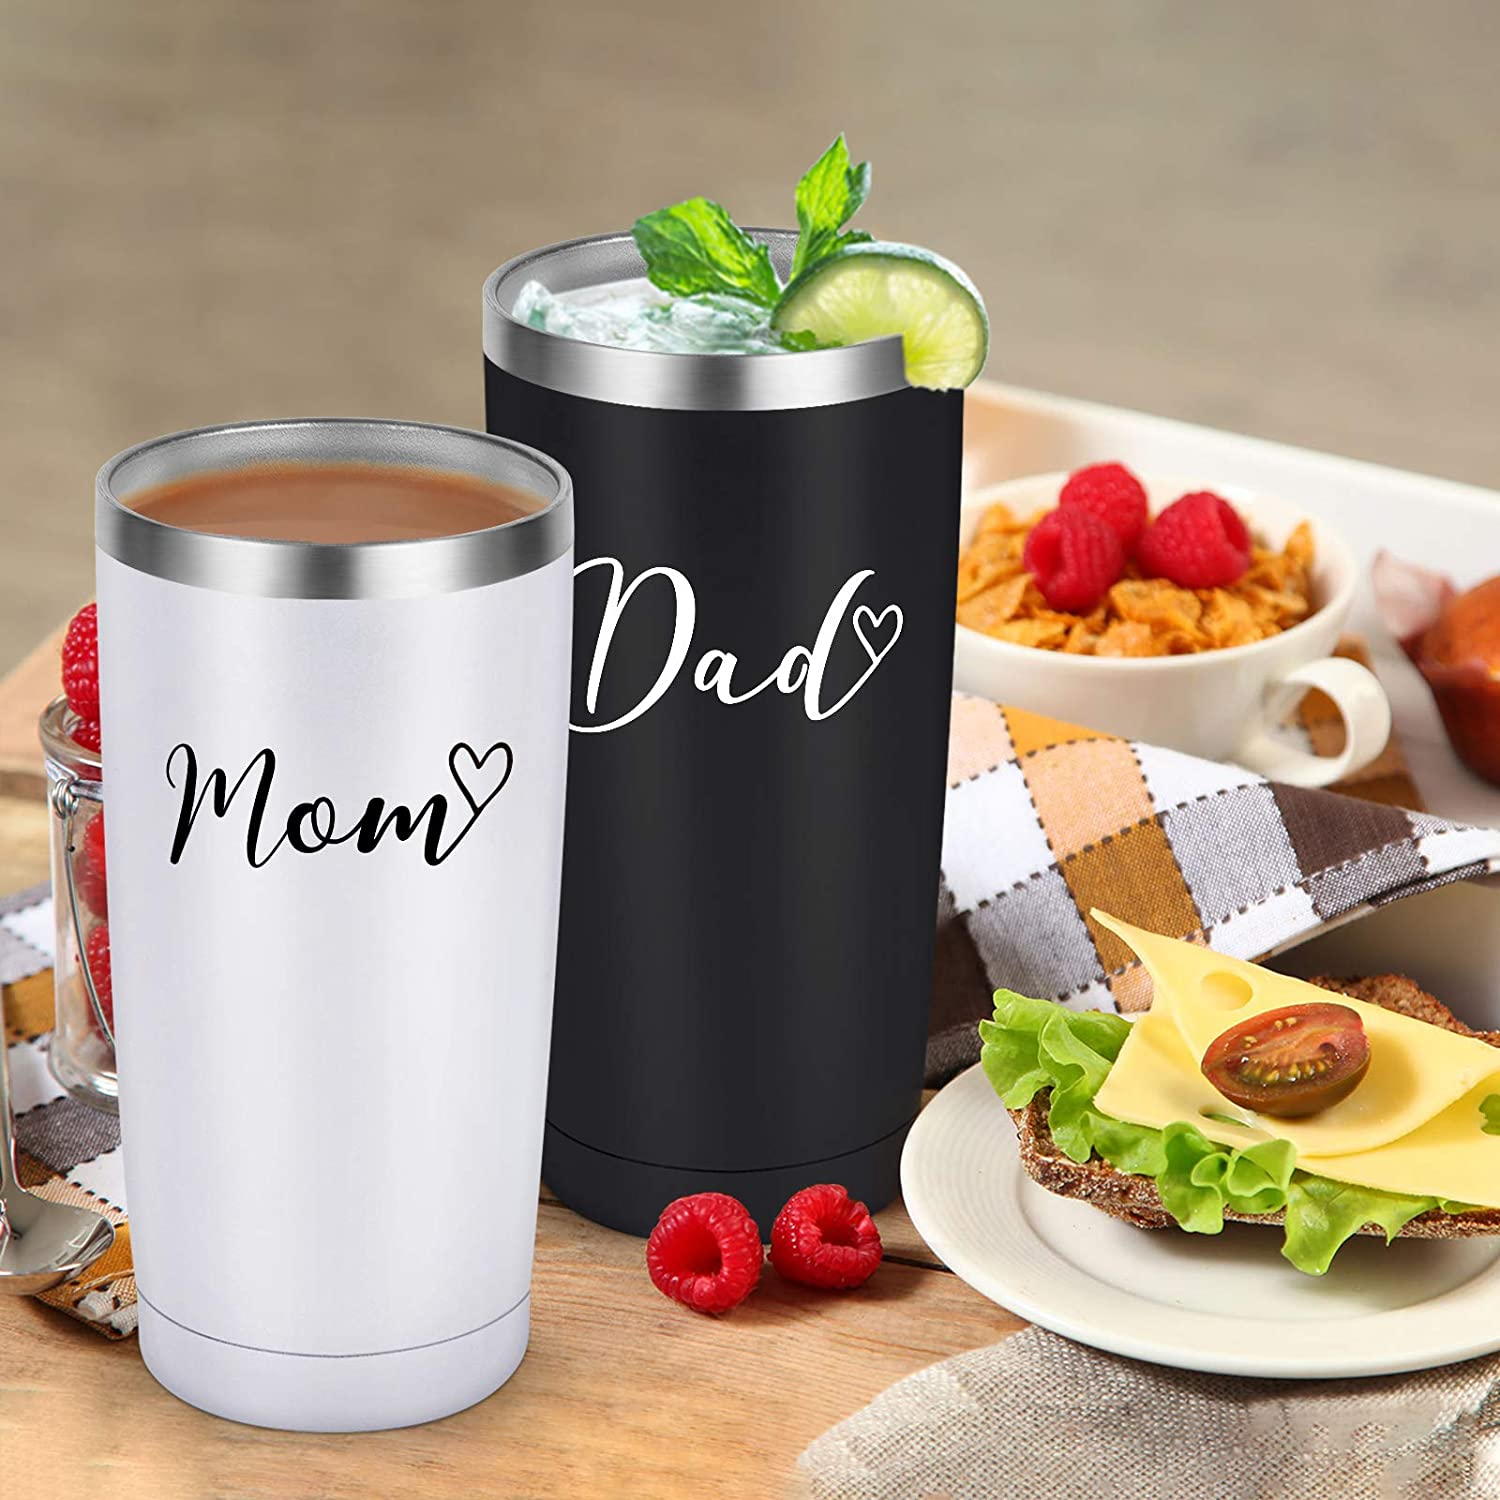 3. Mom and Dad Tumblers